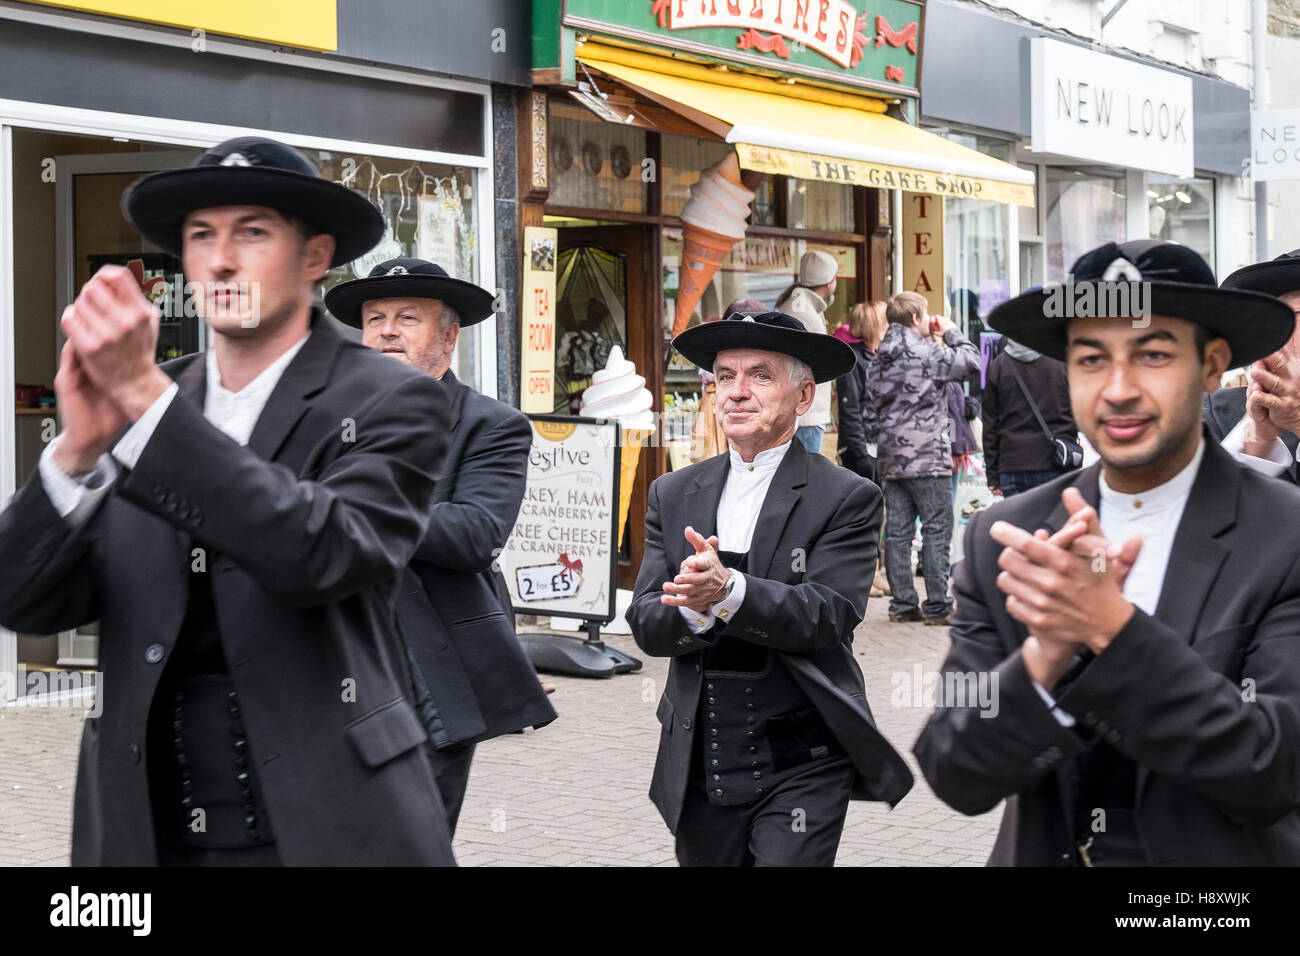 As part of Lowender Peran musicians and dancers parade through the town of Newquay, Cornwall. - Stock Image